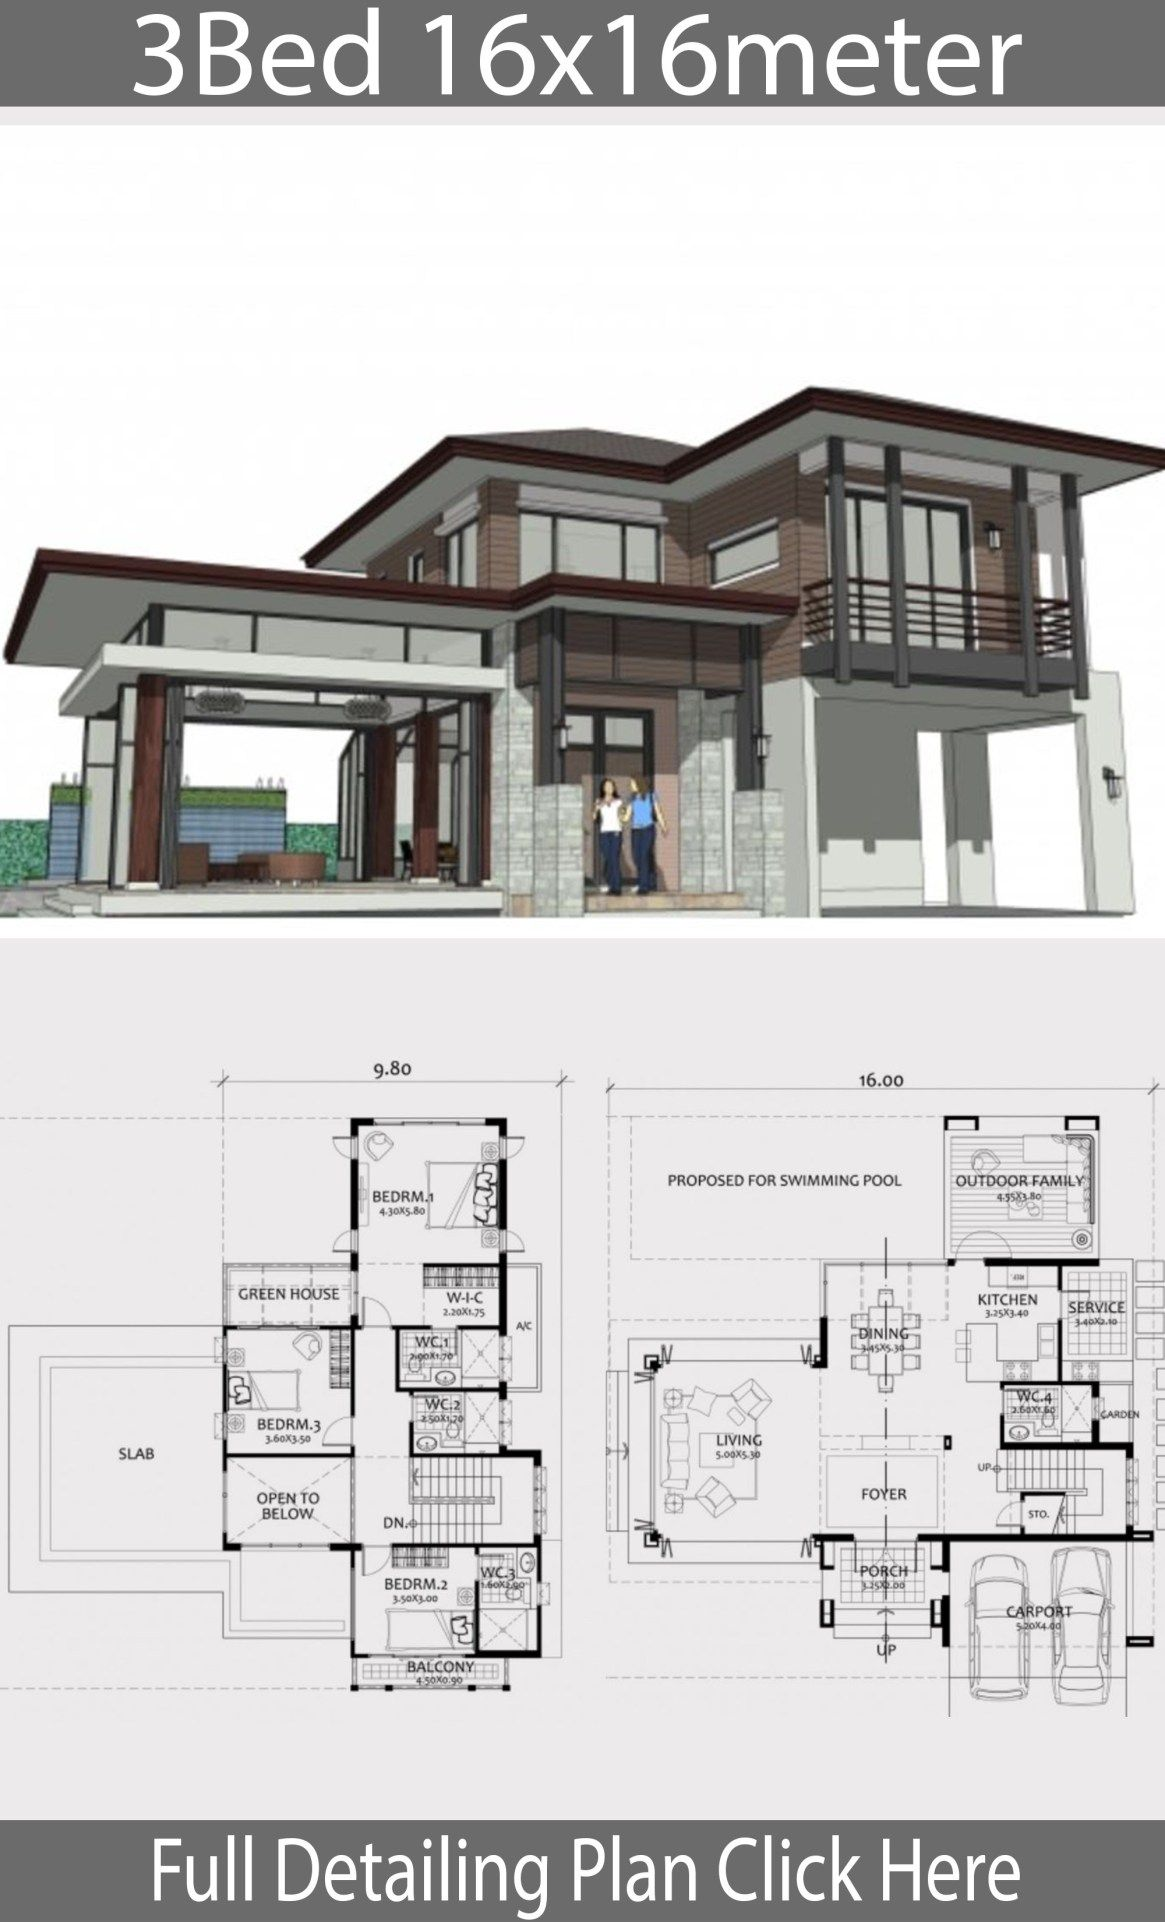 Home Design Plan 16x16m With 3 Bedrooms Home Design With Plansearch Home Building Design Architectural House Plans Building Plans House